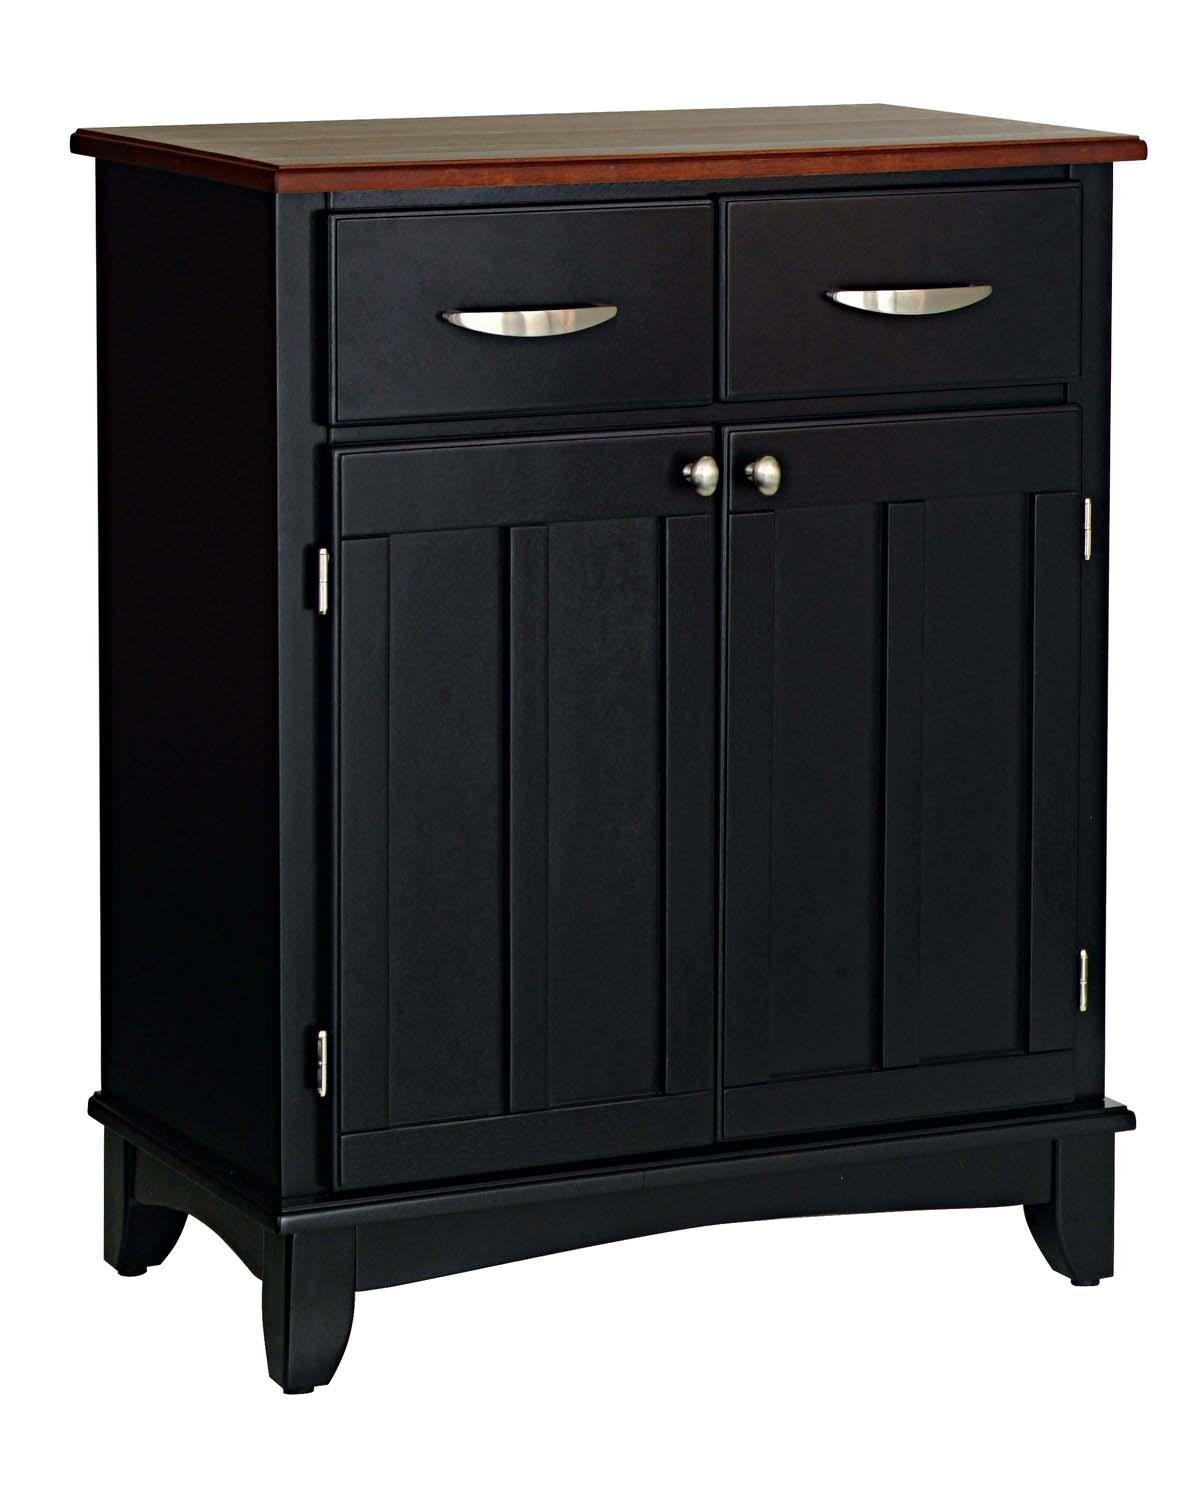 Home Styles 5001-0042 Small Wood Buffet Sideboard -  - sideboards-buffets, kitchen-dining-room-furniture, kitchen-dining-room - 61ZhmQUXgQL -